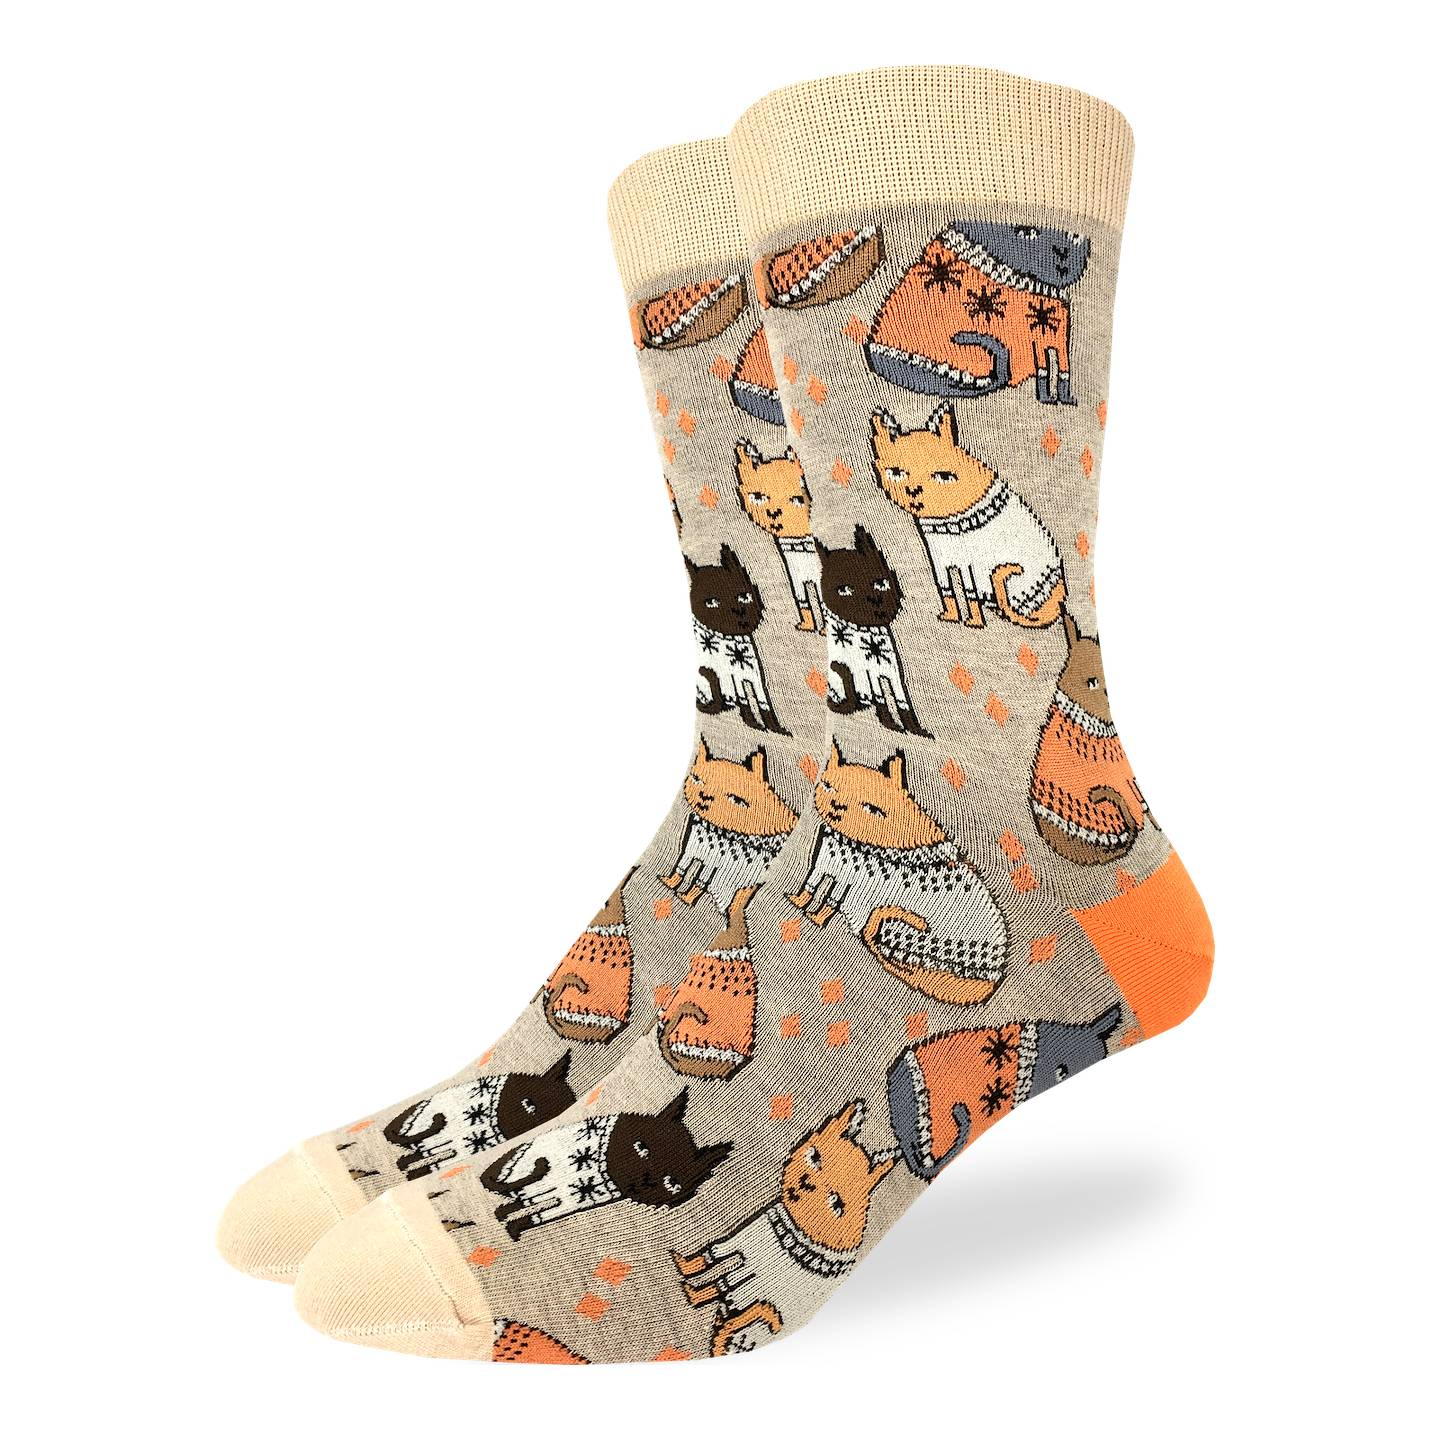 Good Luck Sock Men's - Cats in Sweaters